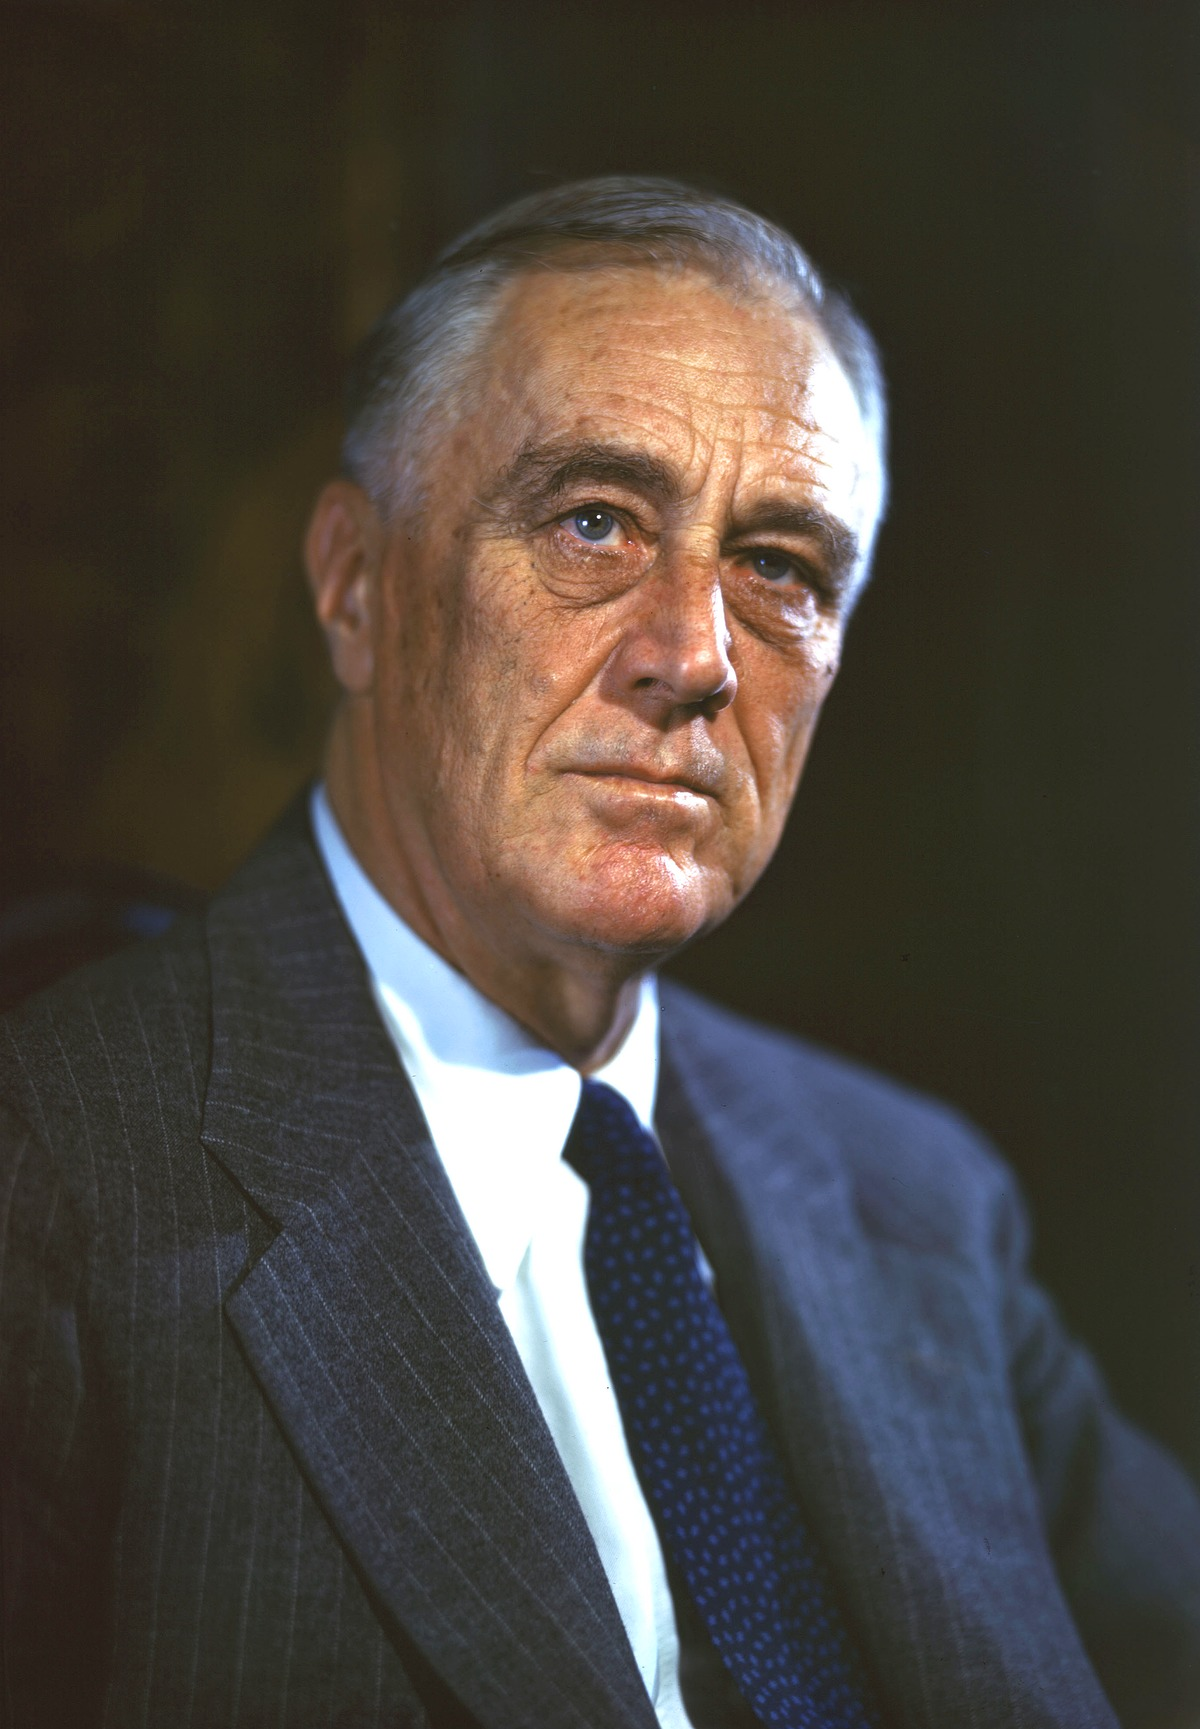 a biography of franklin d roosevelt Franklin delano roosevelt (january 30, 1882 to april 12, 1945) was the 32nd american president who led the united states through the great depression and world war ii, greatly expanding the powers.